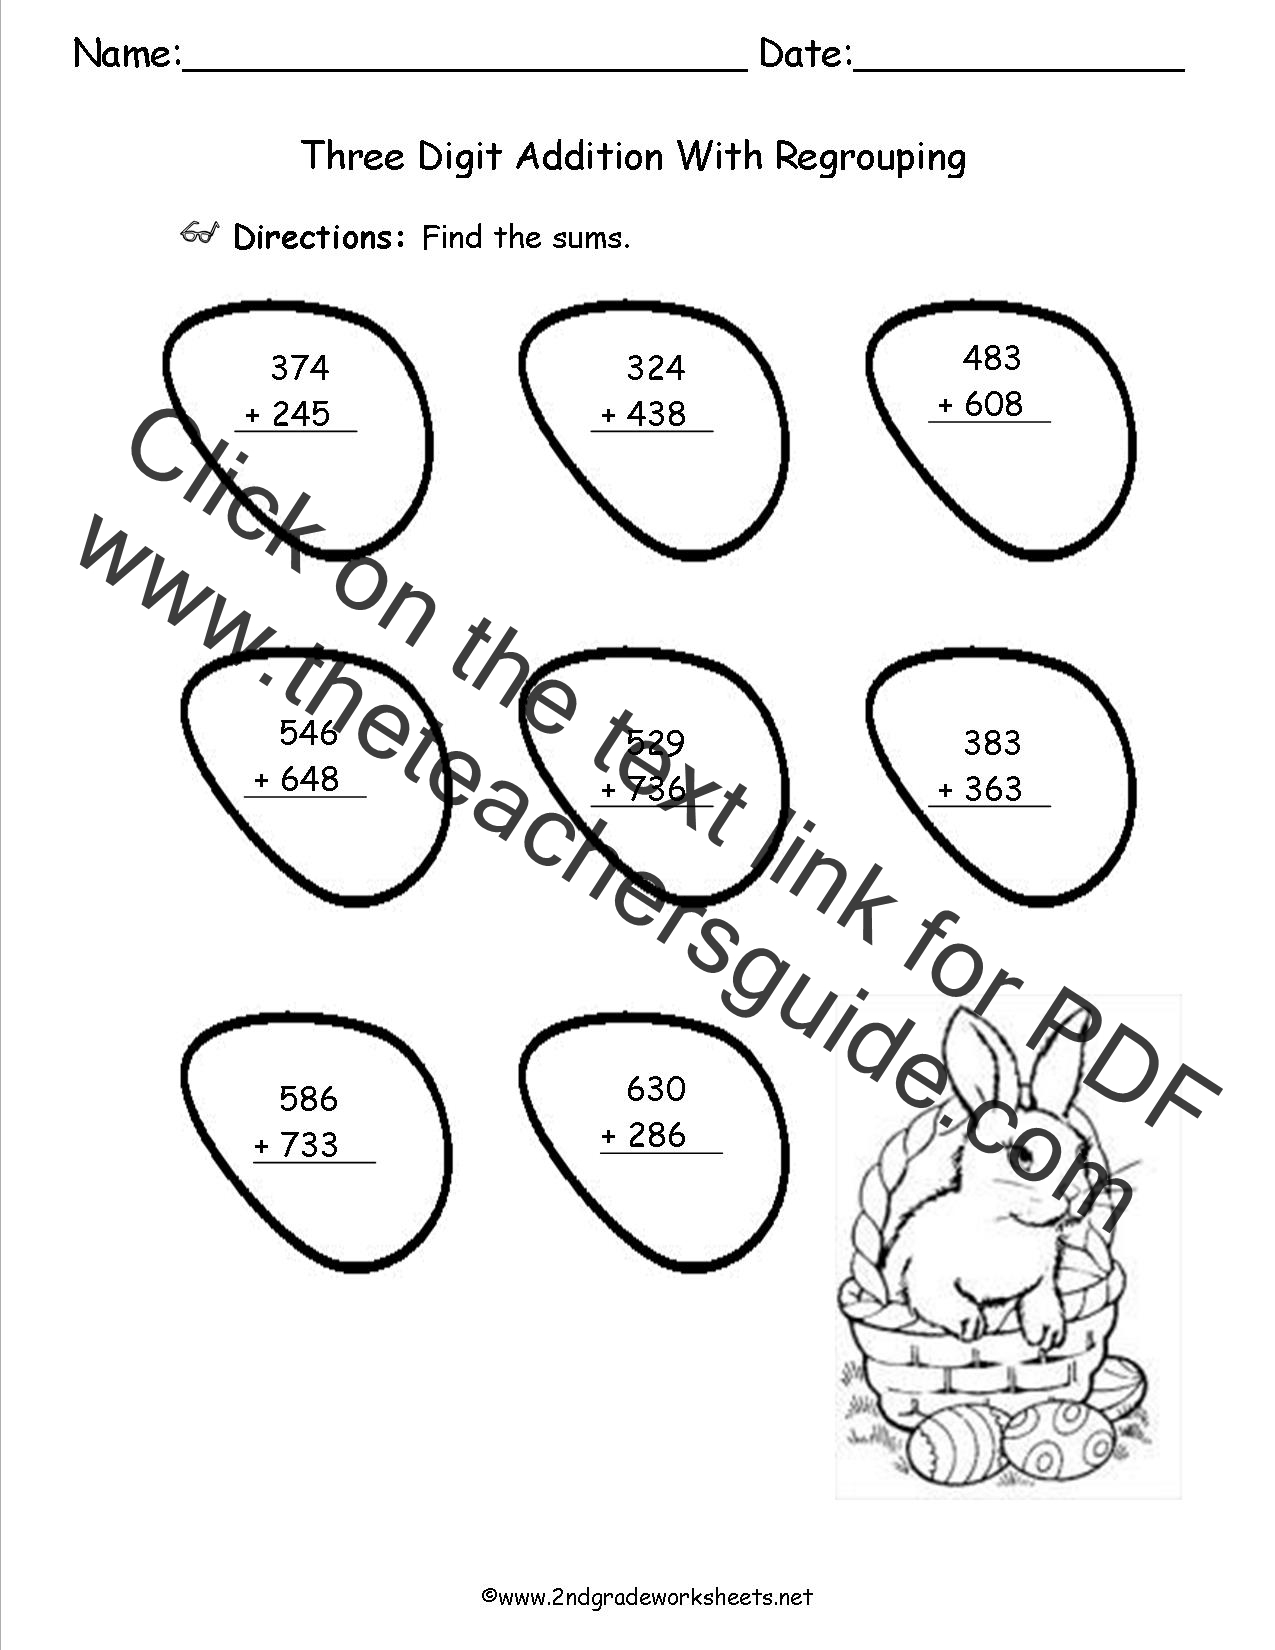 math worksheet : easter worksheets and printouts : Three Digit Addition With Regrouping Worksheets